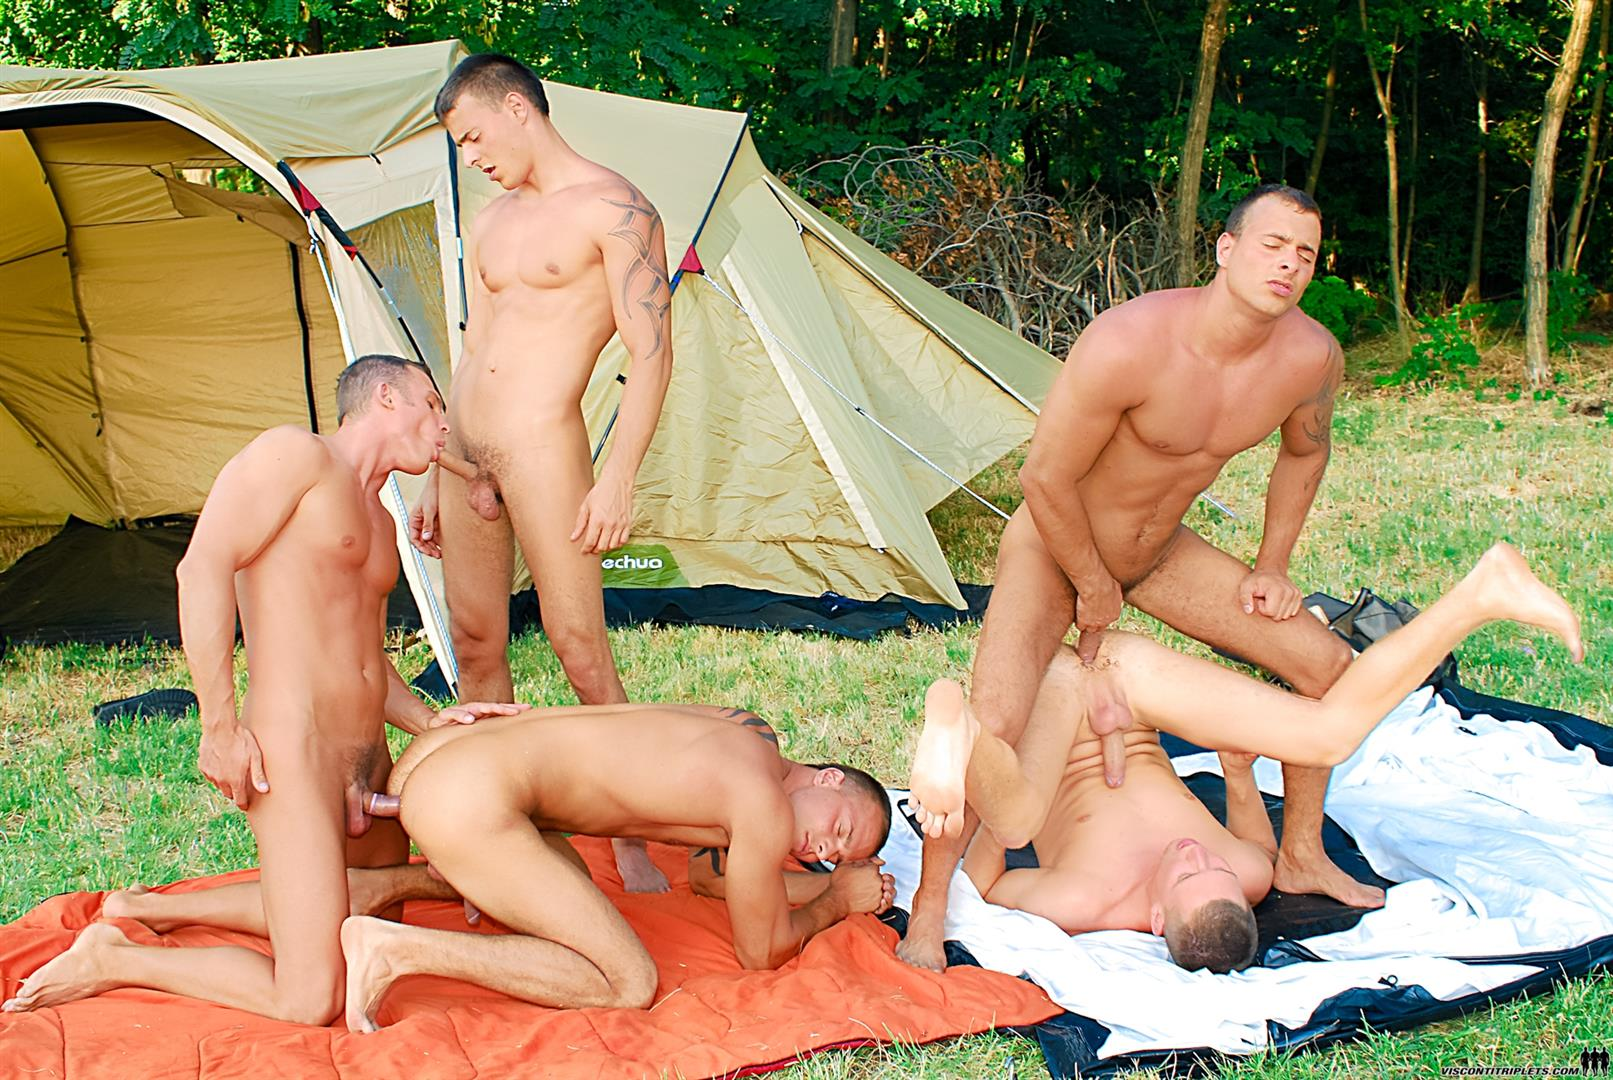 Visconti-Triplets-Jason-Visconti-Jimmy-Visconti-Joey-Visconti-Giuseppe-Pardi-Fucking-During-A-Camping-Trip-Amateur-Gay-Porn-07 Visconti Triplets Tag Team Some Muscle Ass While Camping